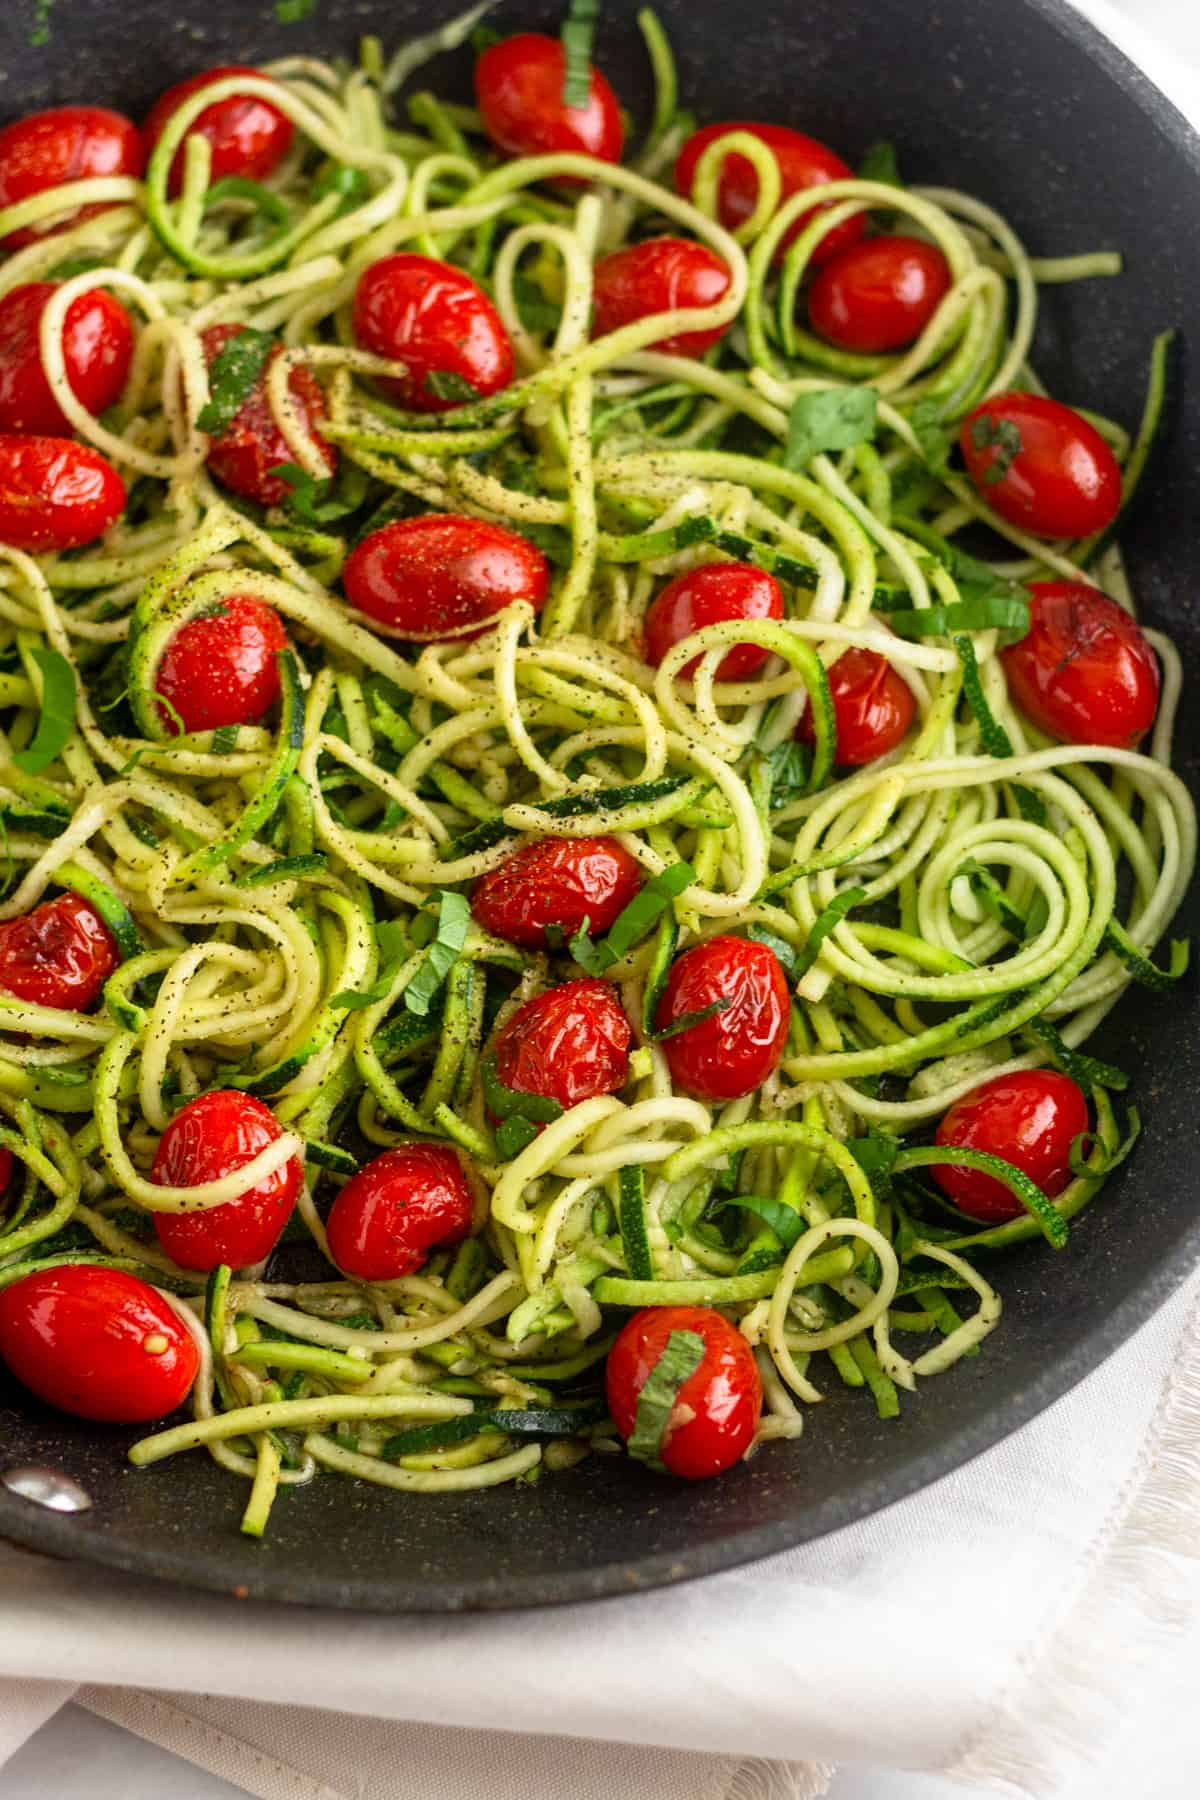 Large saute pan filled with zucchini noodles, blistered tomatoes, and fresh basil